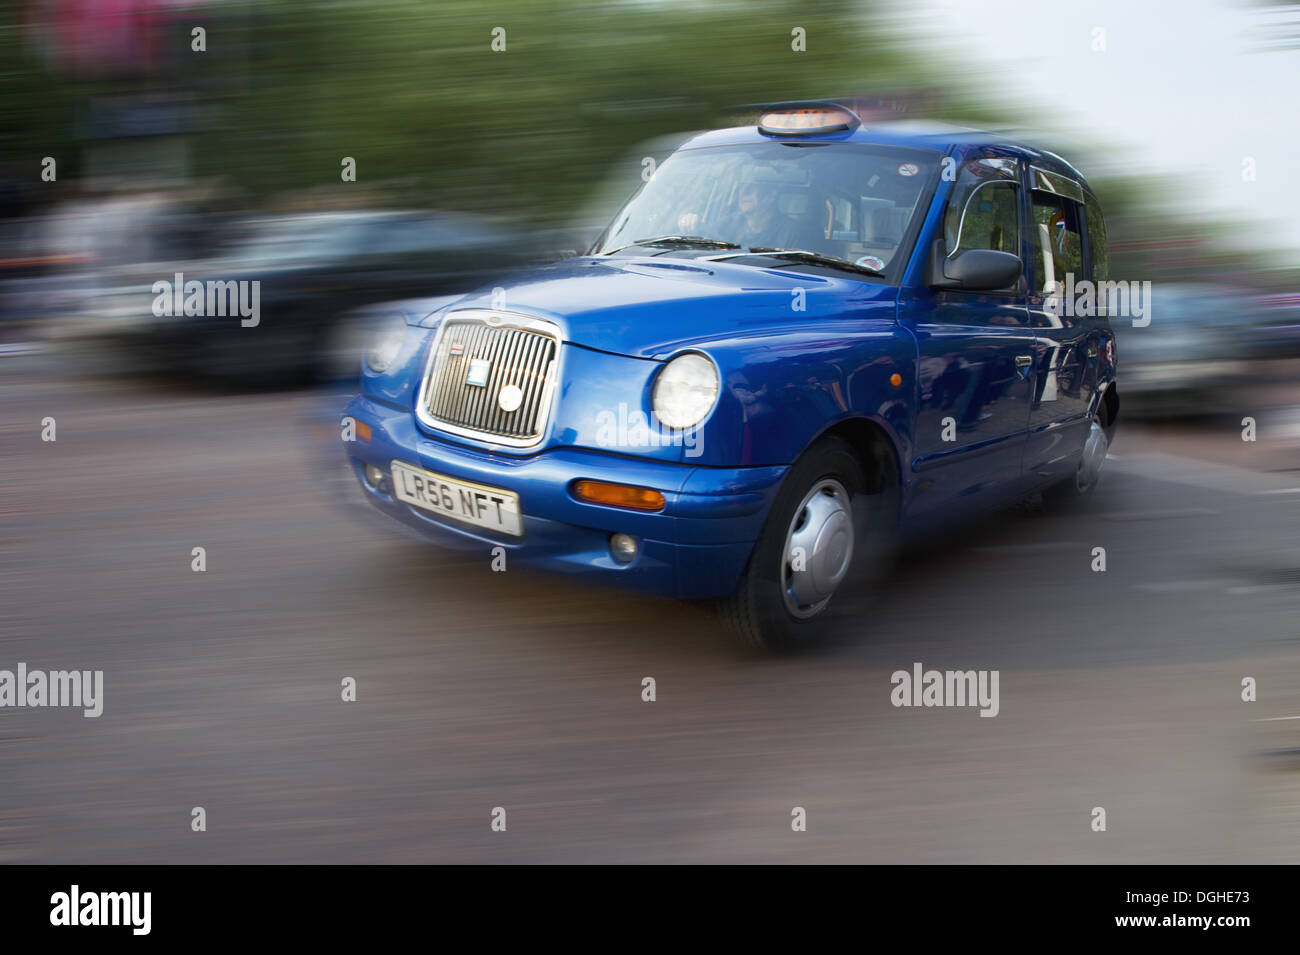 Blue taxi on city road, The Mall, City of Westminster, London, England, april - Stock Image